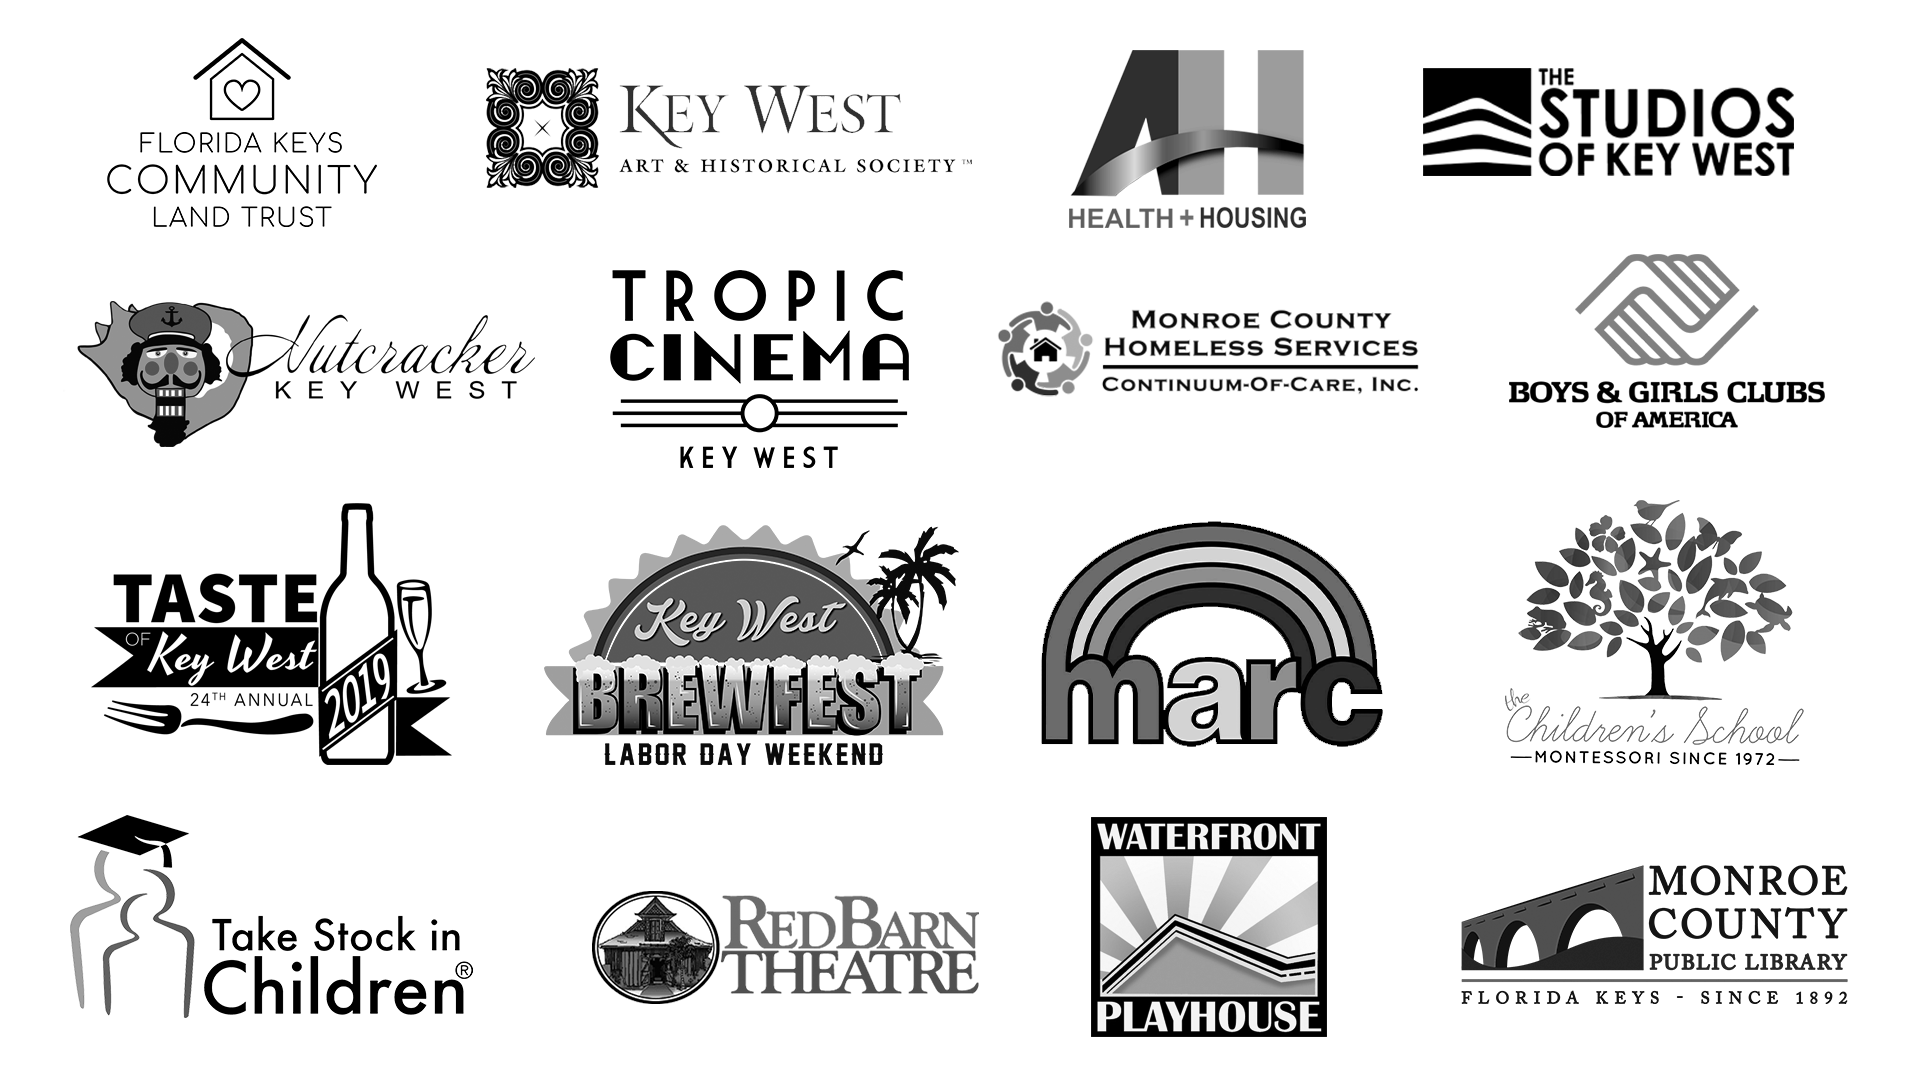 Logos of Wonderdog Studios' Community and Non-Profit client list. Includes: Florida Keys Community Land Trust, Key West Art & Historical Society, AHI of Key West, The Studios of Key West, Nutcracker Key West, Tropic Cinema Key West, Monroe County Homeless Services Continuum of Car, Boys & Girls Clubs of America, Taste of Key West, Key West Brewfest, Marc House, Montessori Children's School, Take Stock in Children, Red Barn Theatre, Waterfront Playhouse, Monroe County Public Library